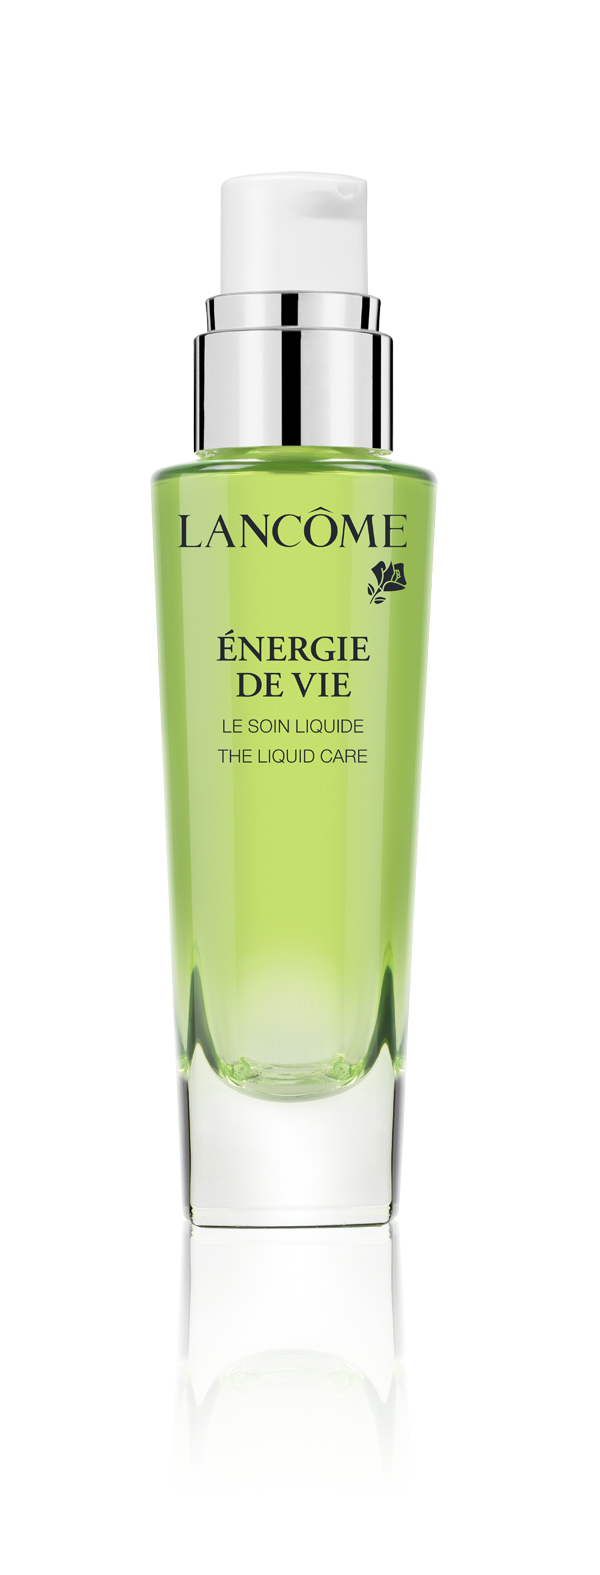 lancome-edv-liquid-care-30ml